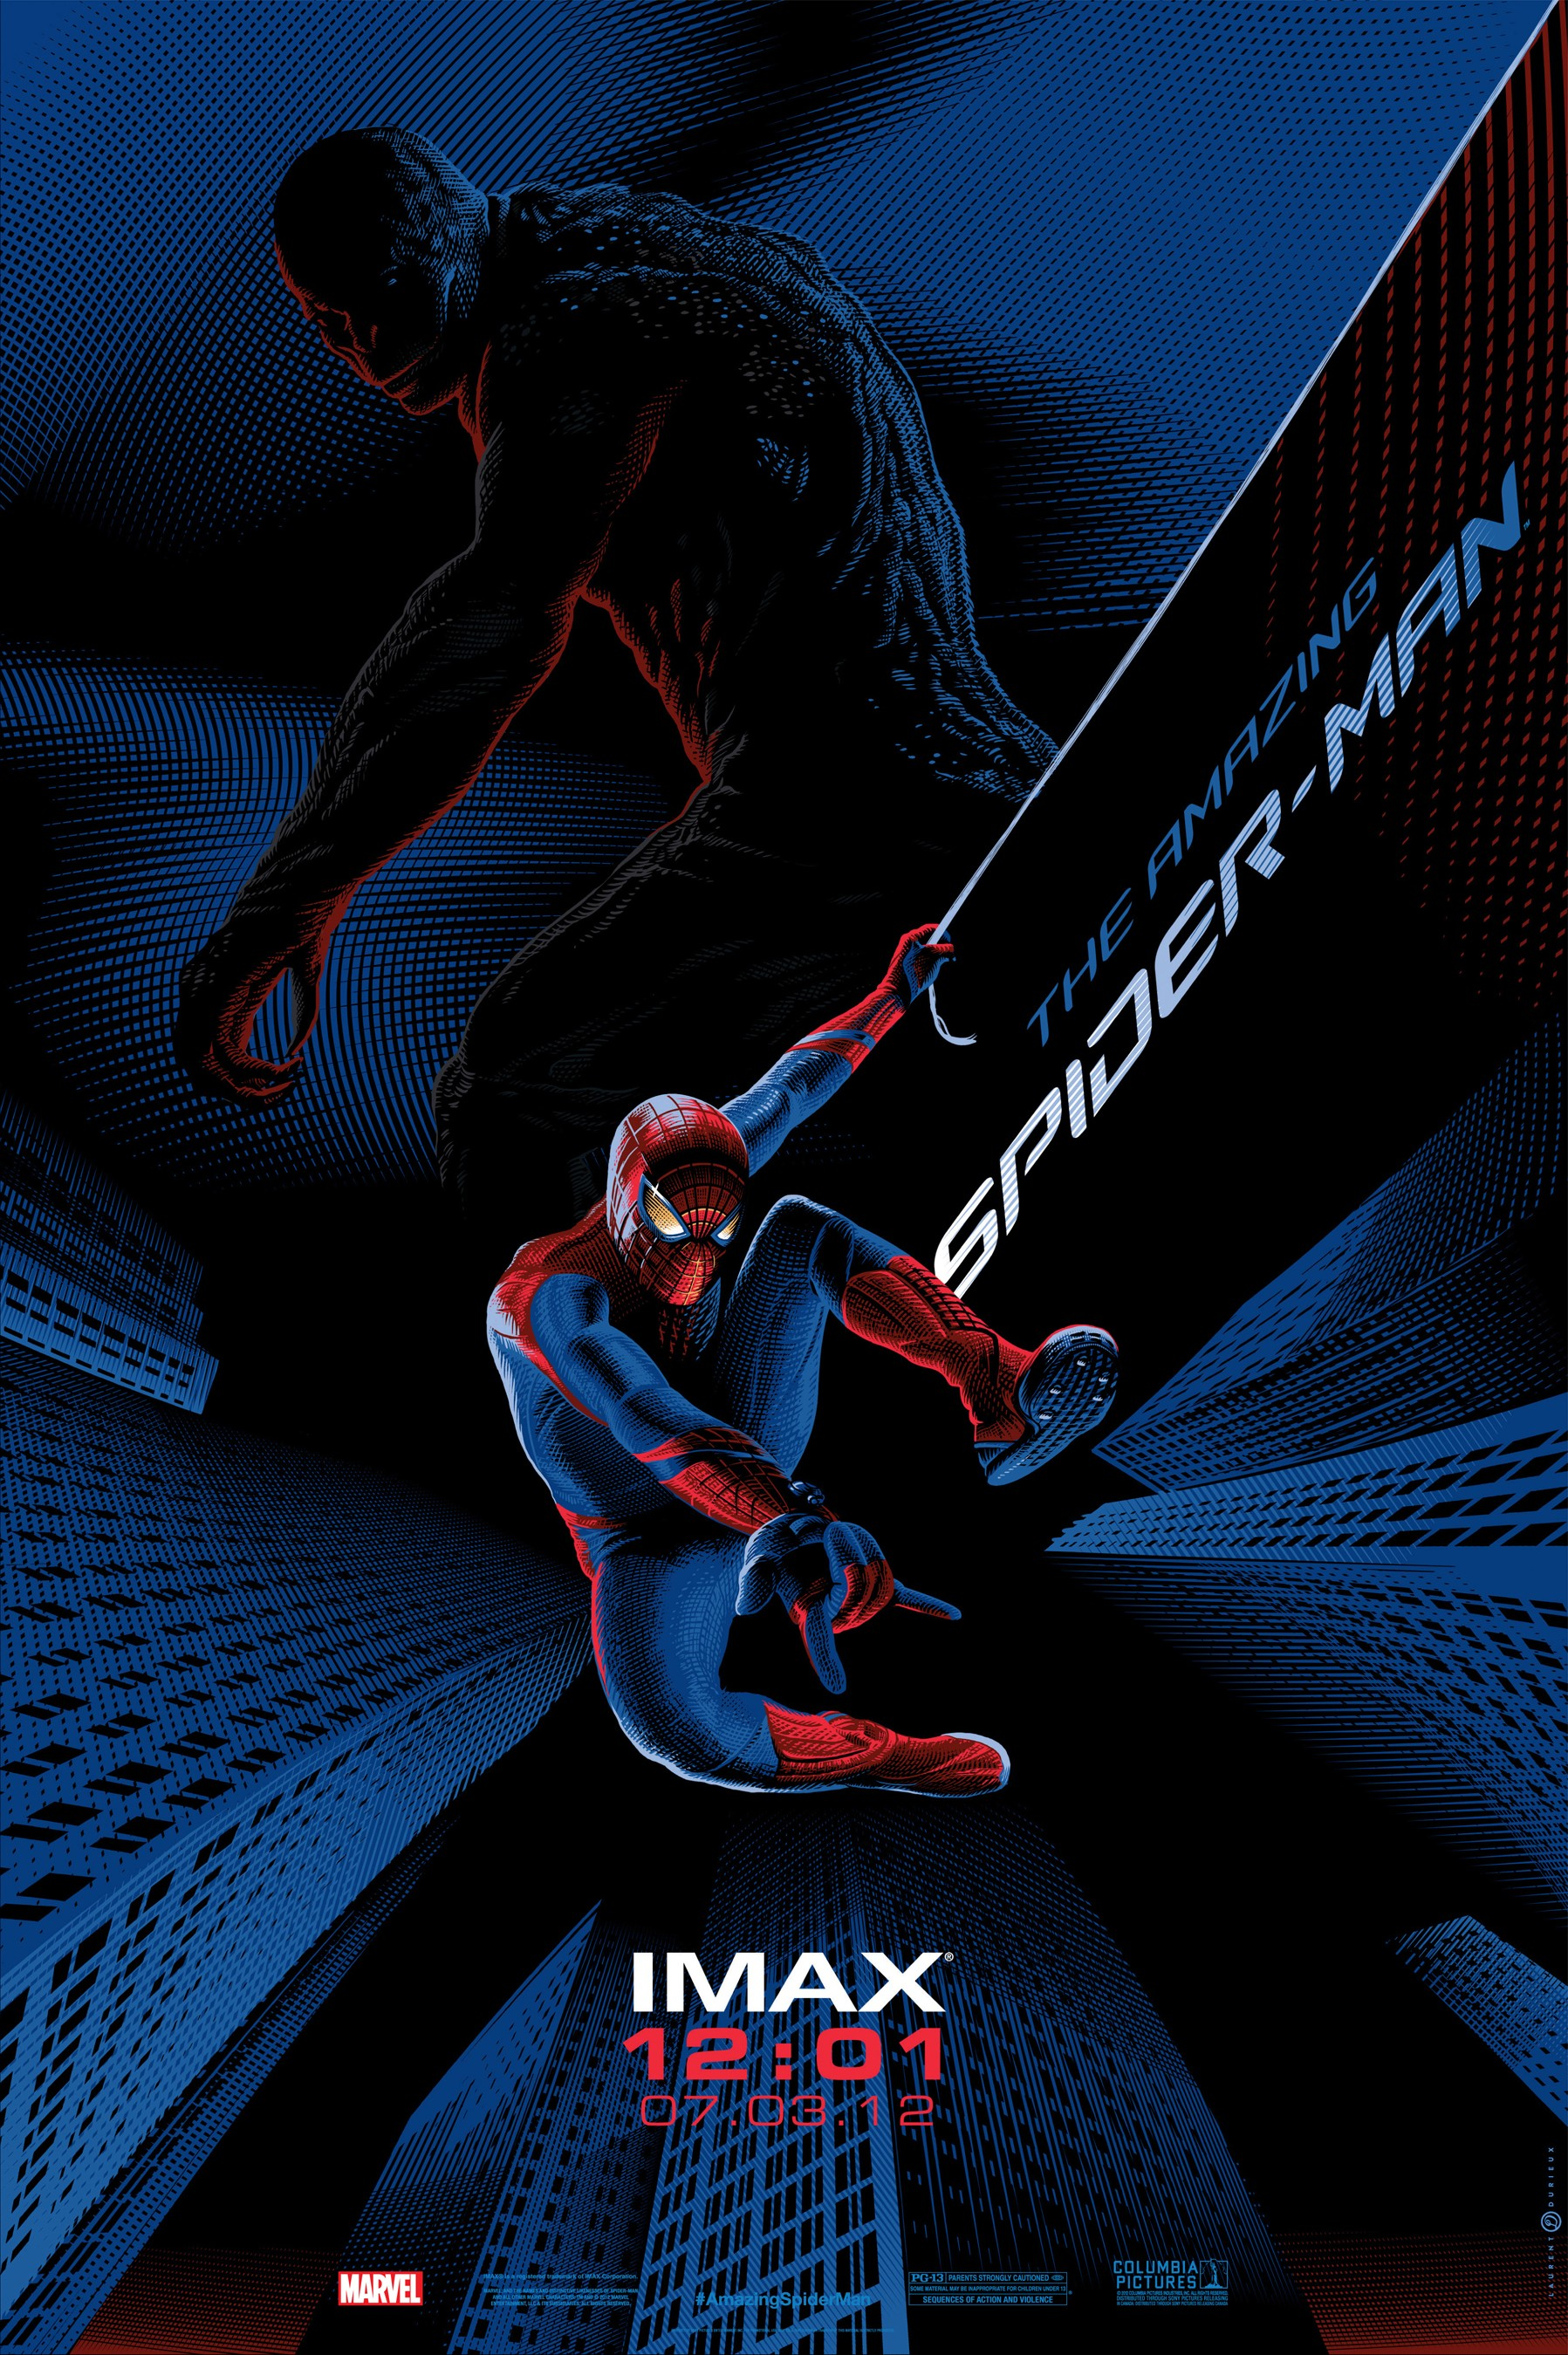 New The Amazing Spider-Man IMAX Poster